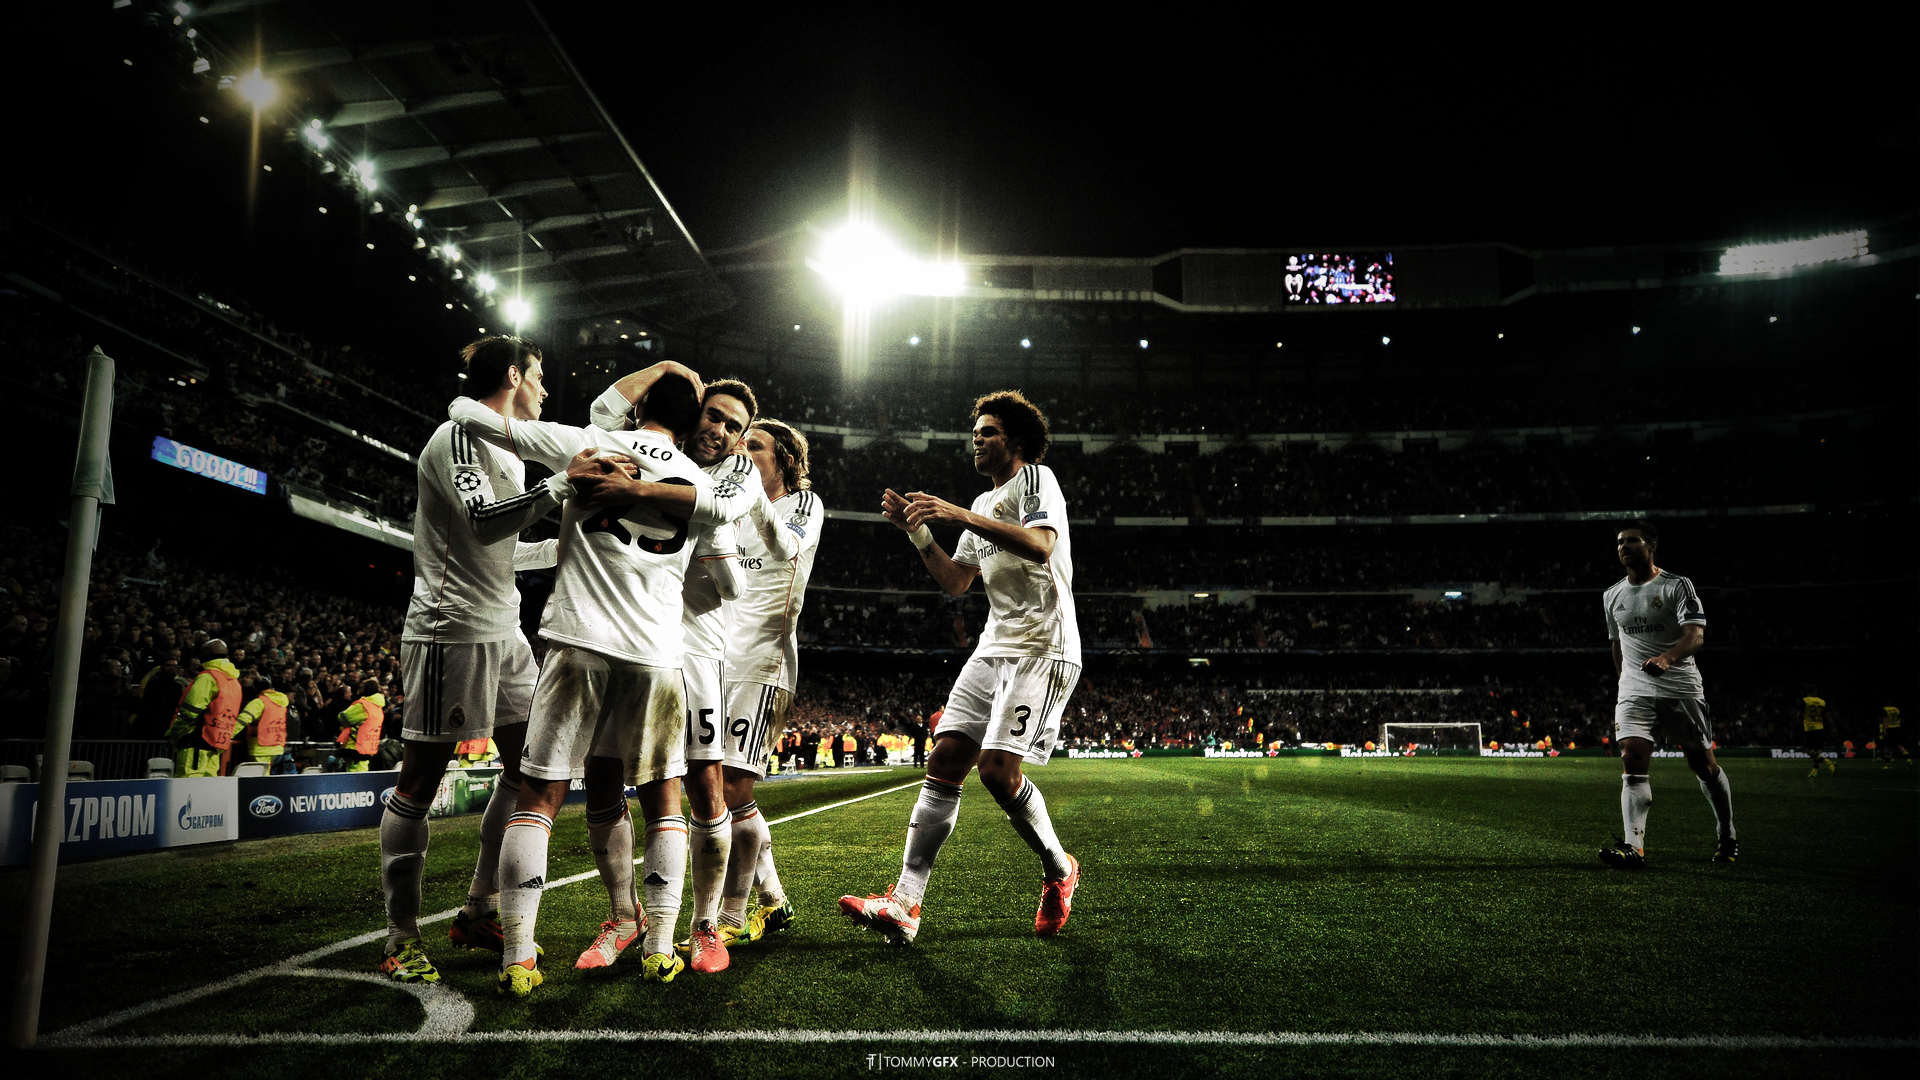 1920x1080 - Real Madrid C.F. Wallpapers 11